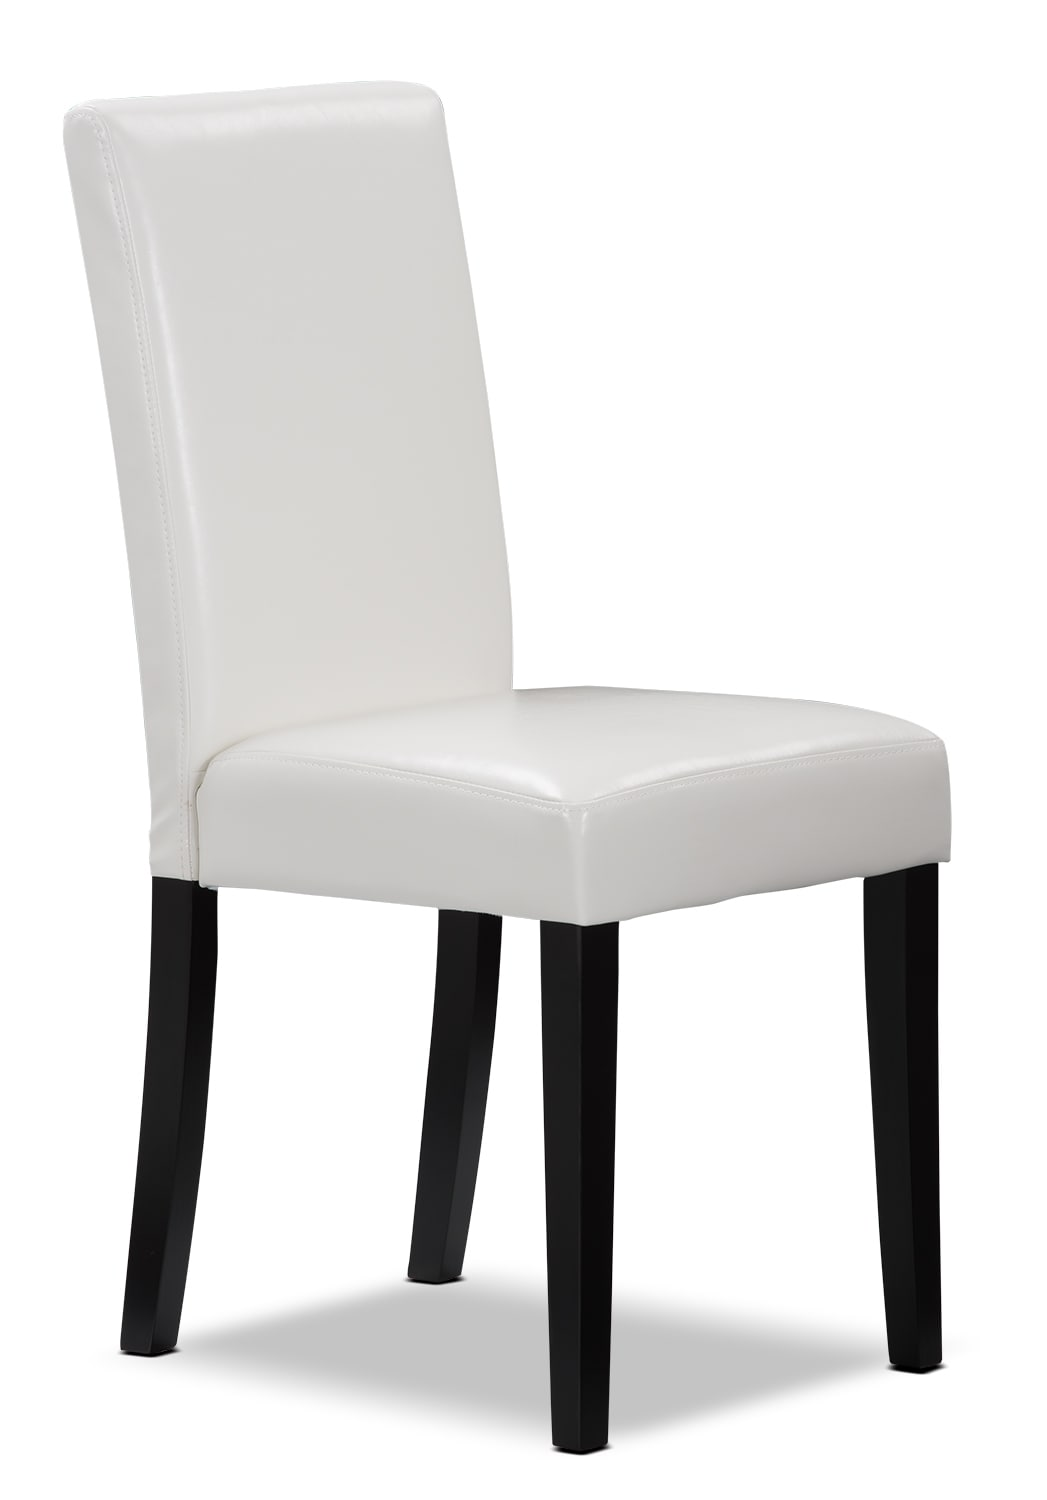 White Faux Leather Accent Dining Chair United Furniture